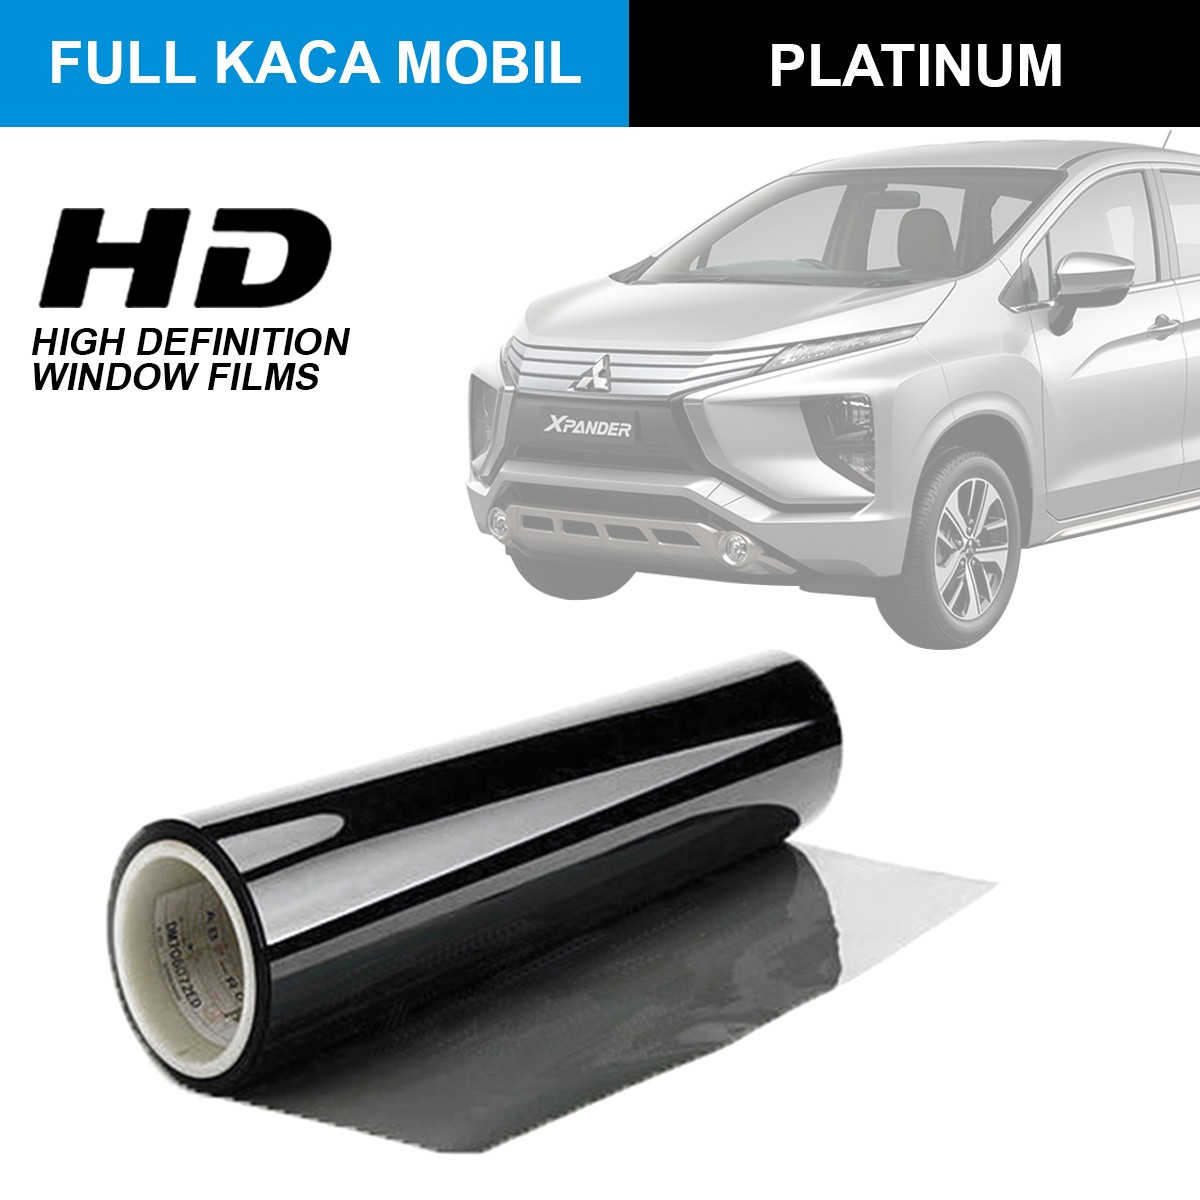 KACA FILM HIGH DEFINITION PLATINUM - (MEDIUM CAR) FULL KACA